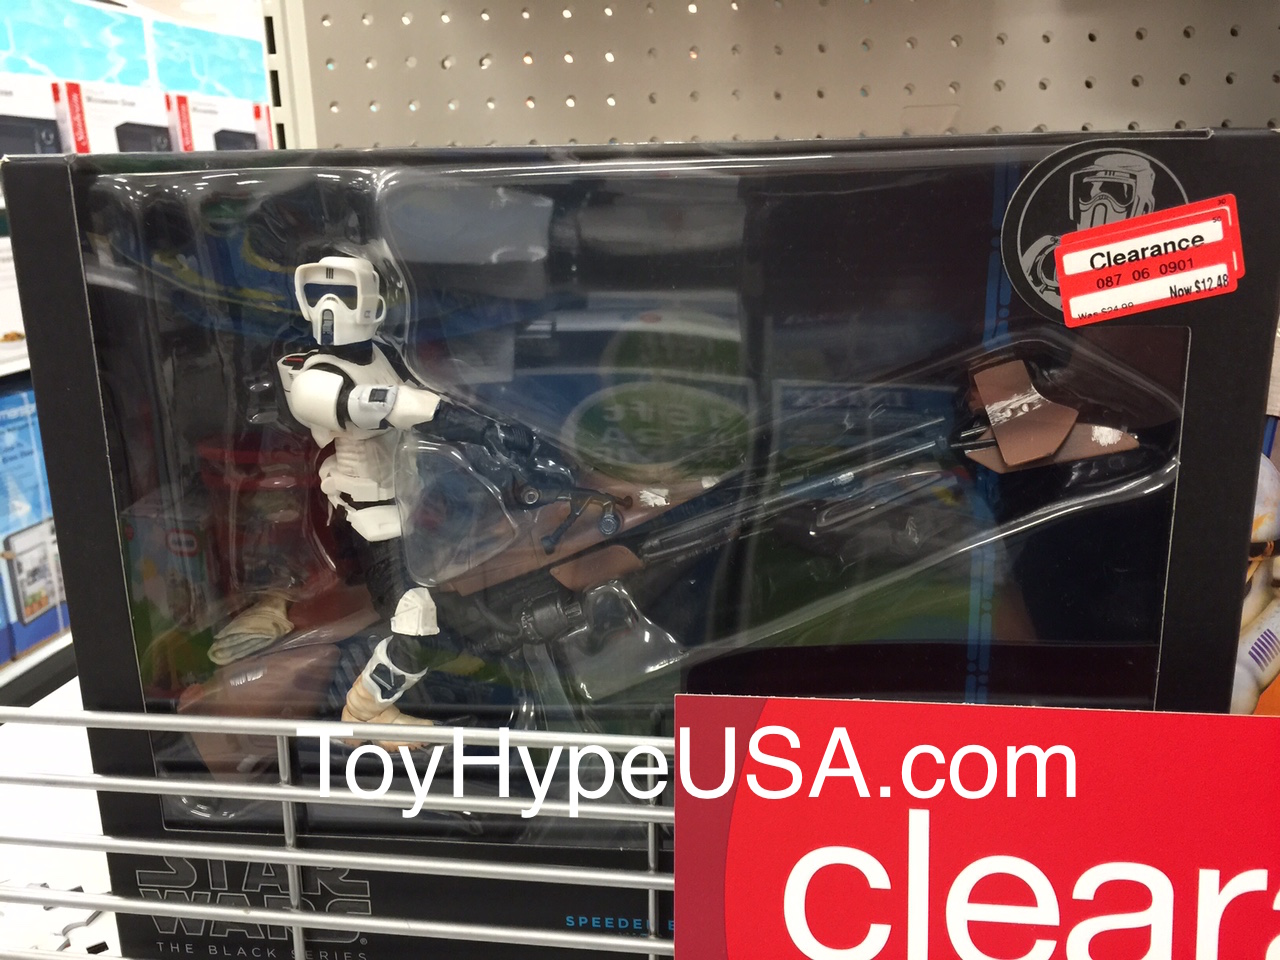 Target Clearances Out Older Star Wars Inventory With Endcap Of Deep Discounts